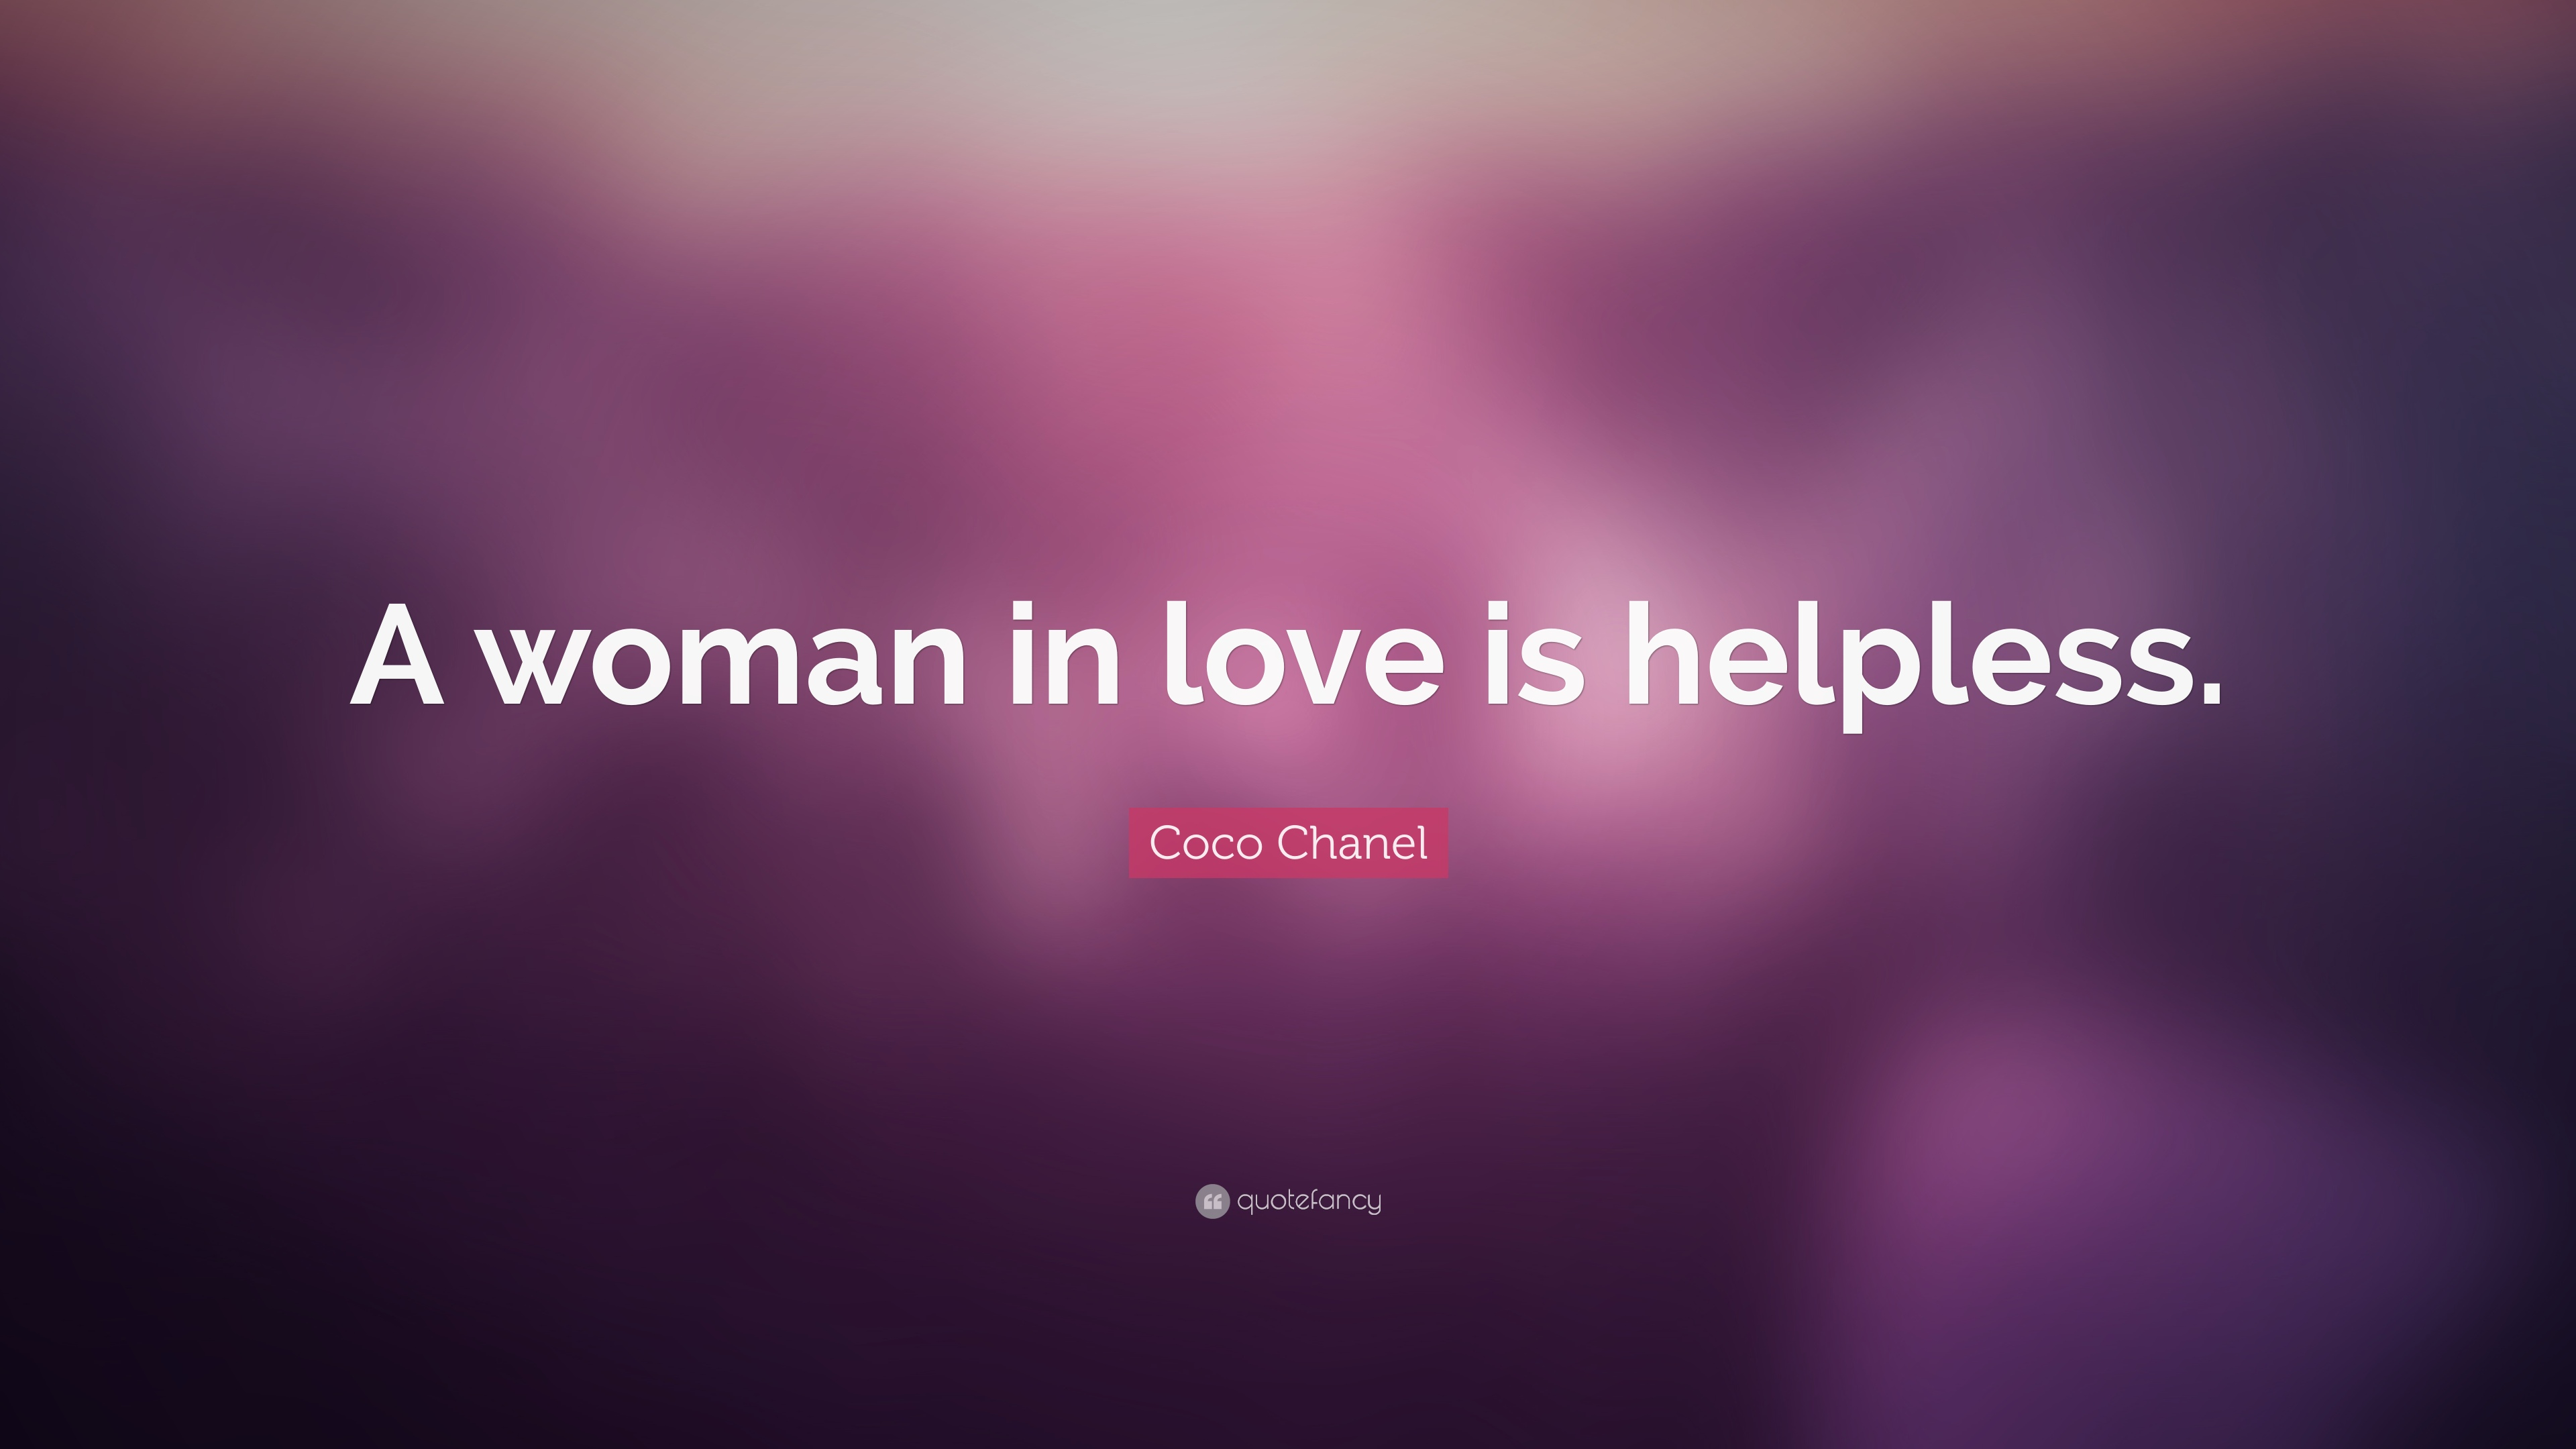 """Coco Chanel Quote """"A woman in love is helpless """" 10 wallpapers"""